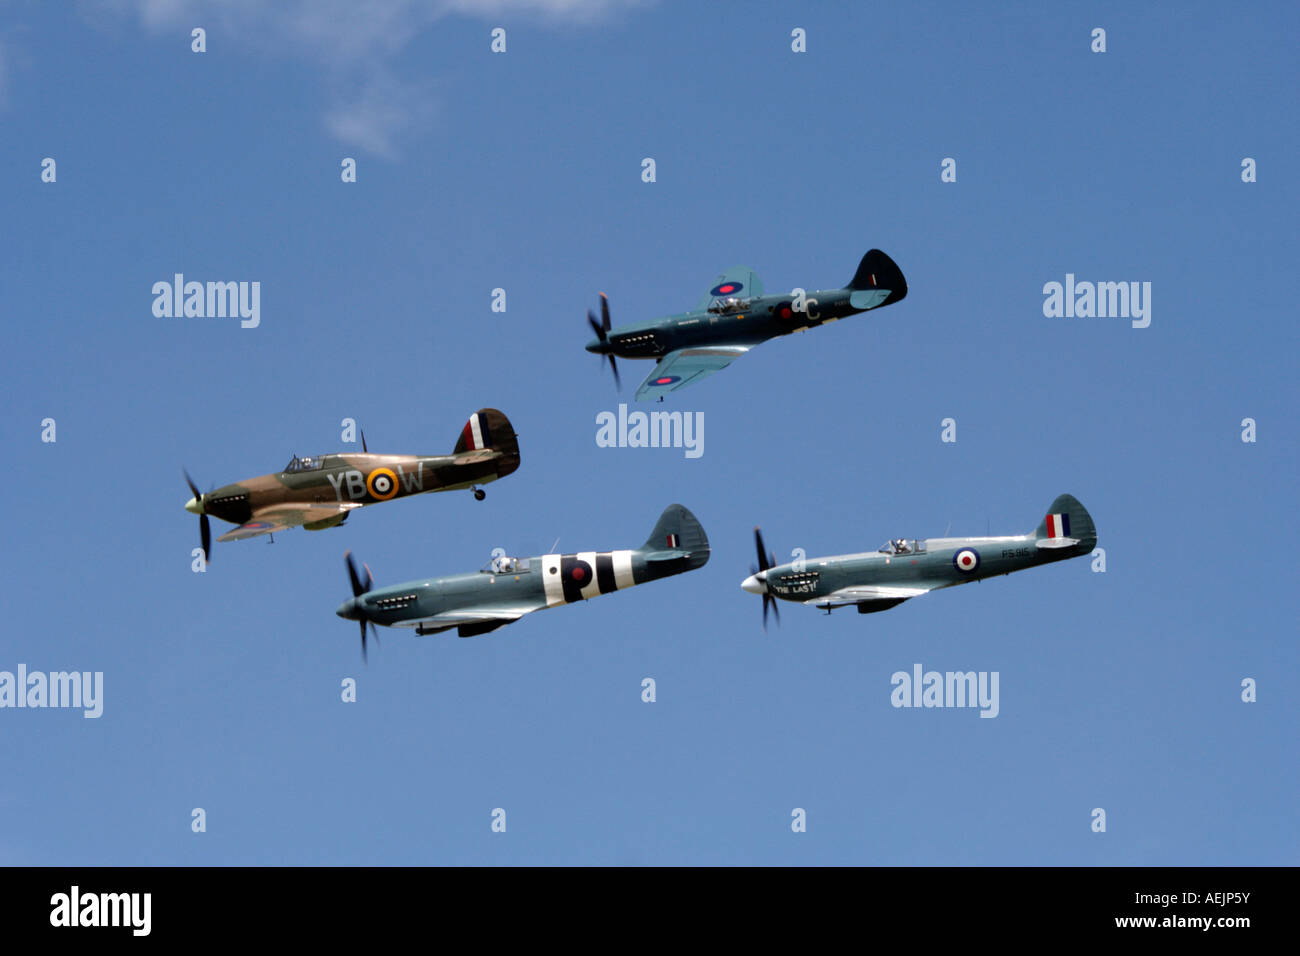 Spitfires & Hurricanes - Stock Image